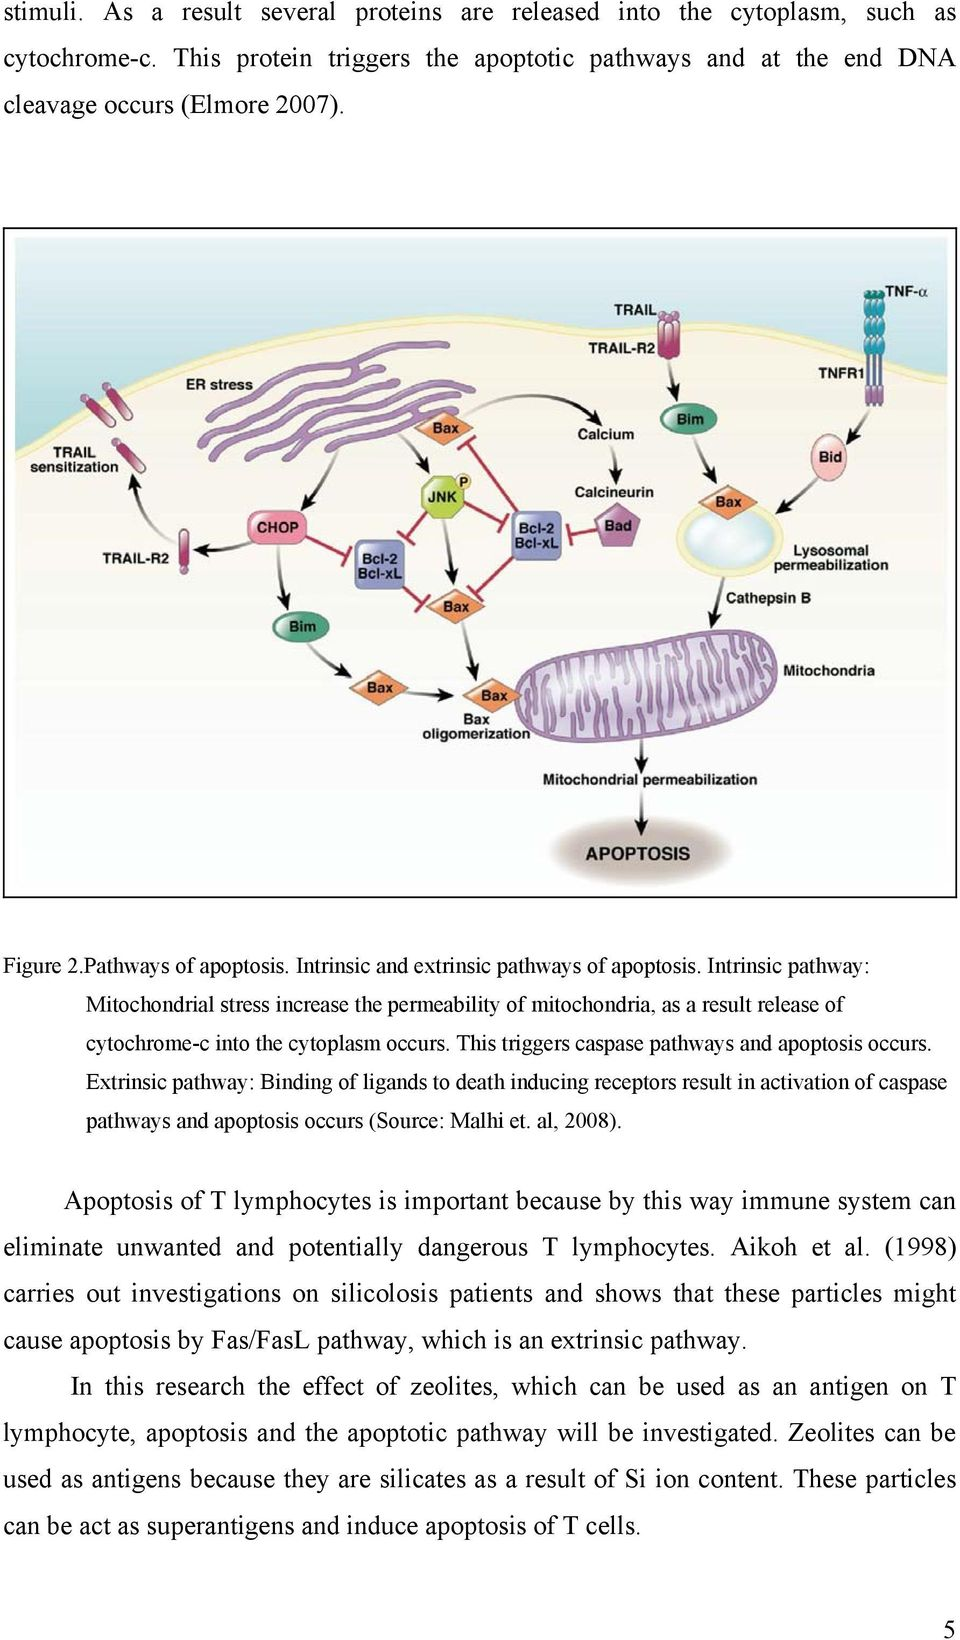 Intrinsic pathway: Mitochondrial stress increase the permeability of mitochondria, as a result release of cytochrome-c into the cytoplasm occurs. This triggers caspase pathways and apoptosis occurs.